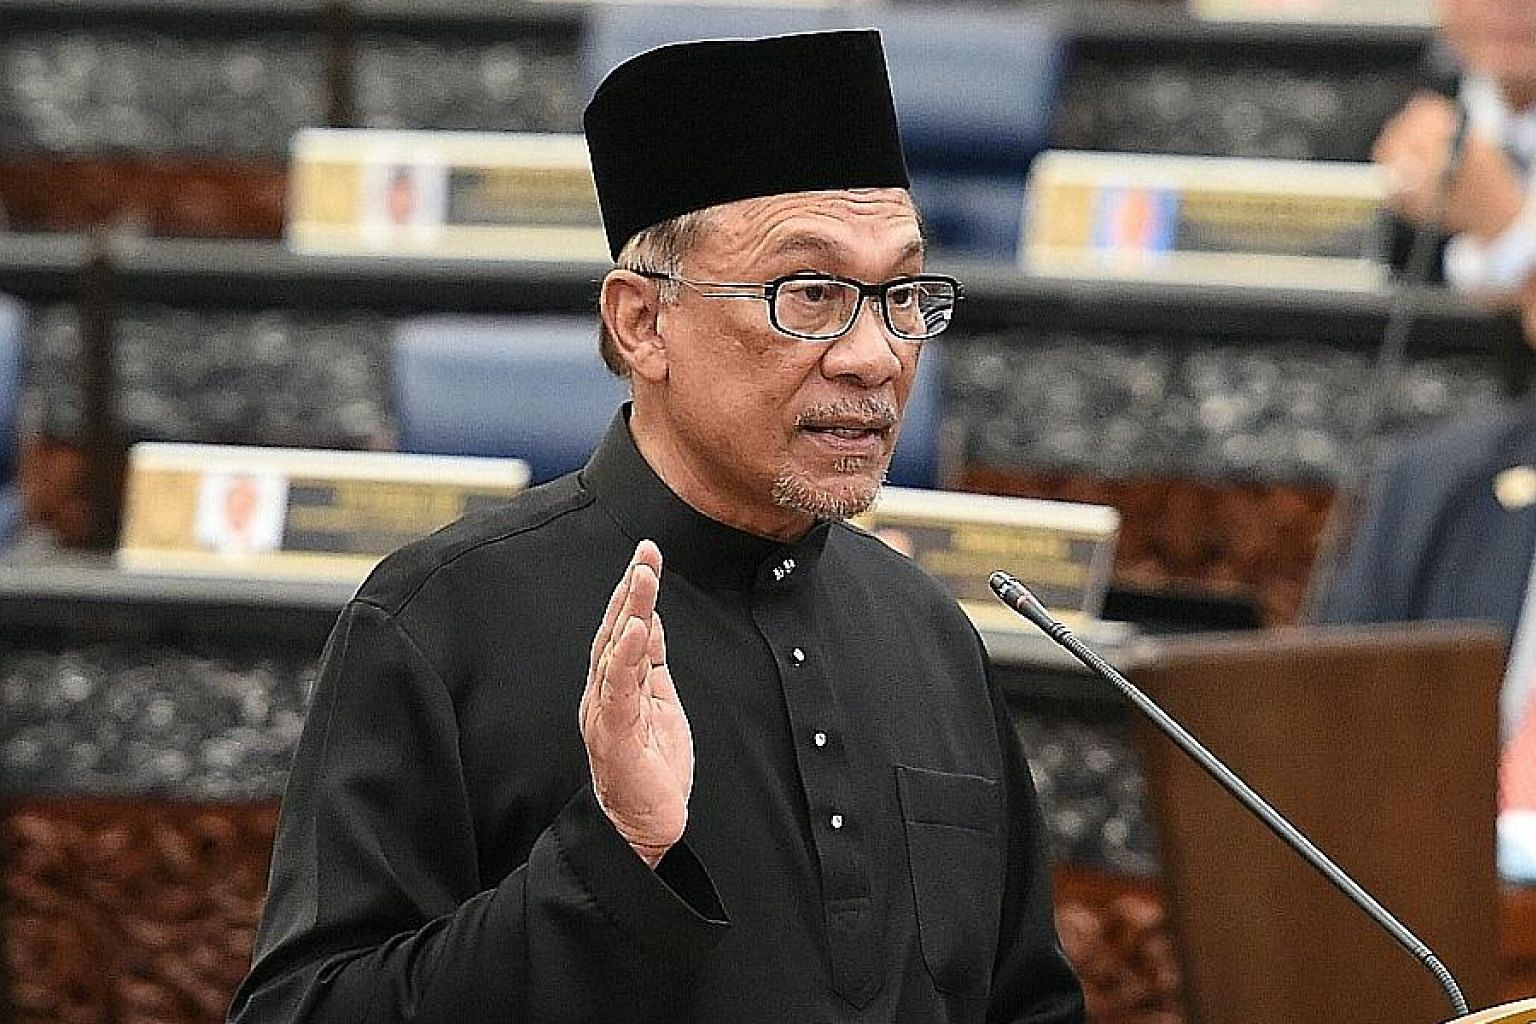 Datuk Seri Anwar Ibrahim taking the oath as a Member of Parliament during yesterday's swearing-in ceremony at Malaysia's Parliament House in Kuala Lumpur.